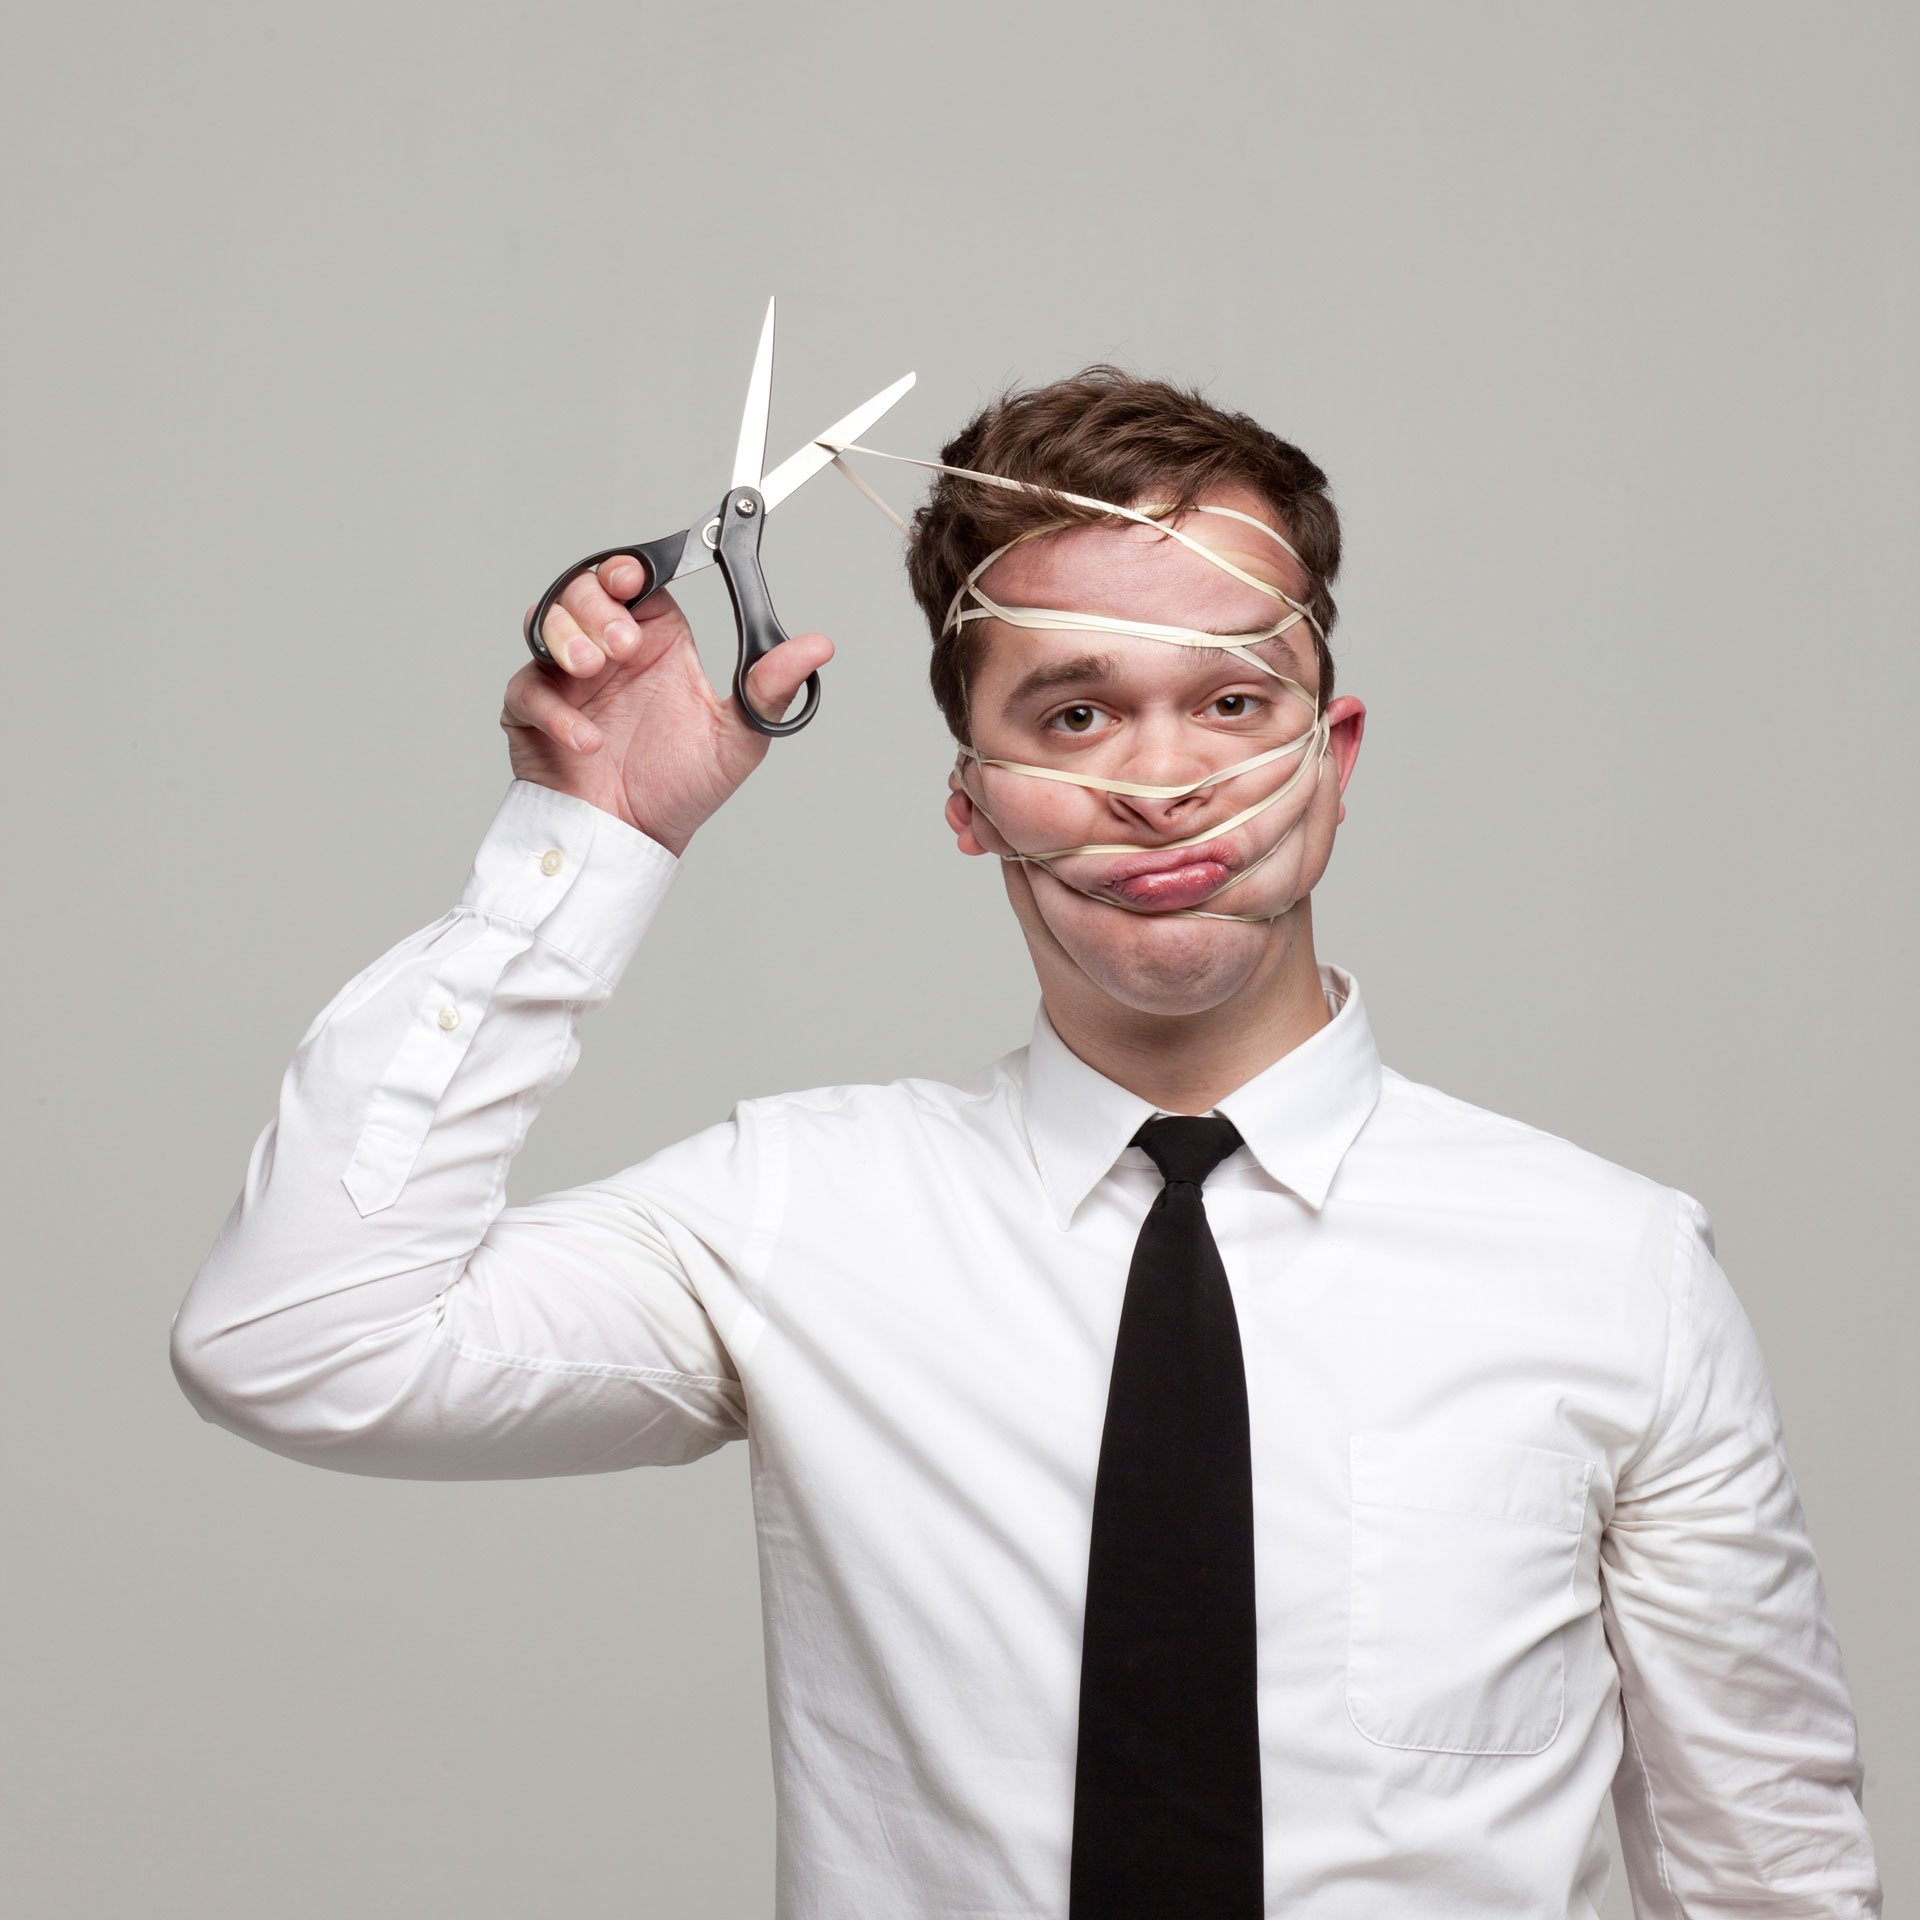 young man with tied face trying to cut rope